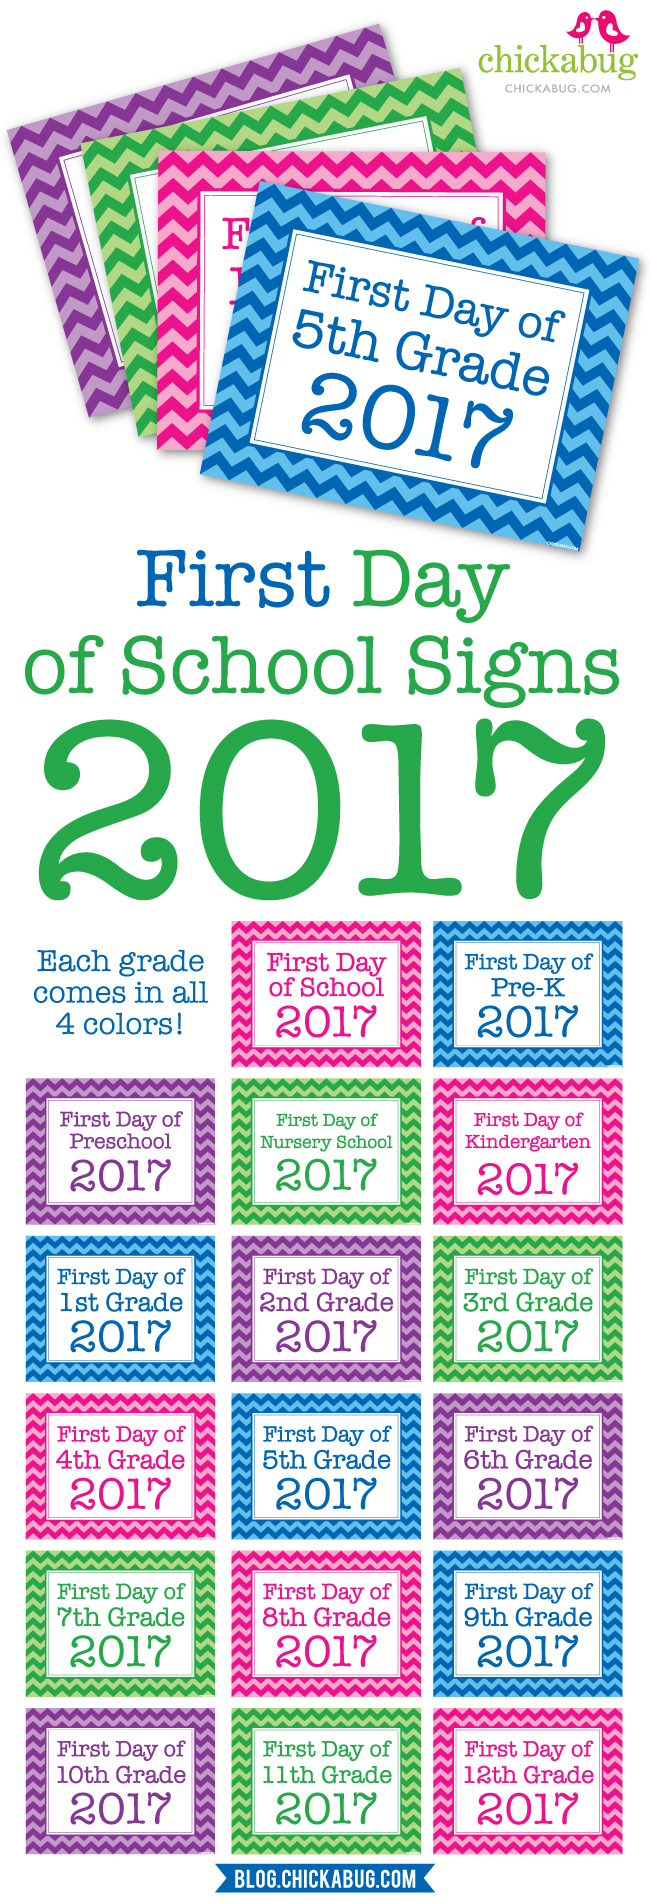 Free Printable First Day Of School Signs 2017 | Chickabug - Free Printable First Day Of School Signs 2017